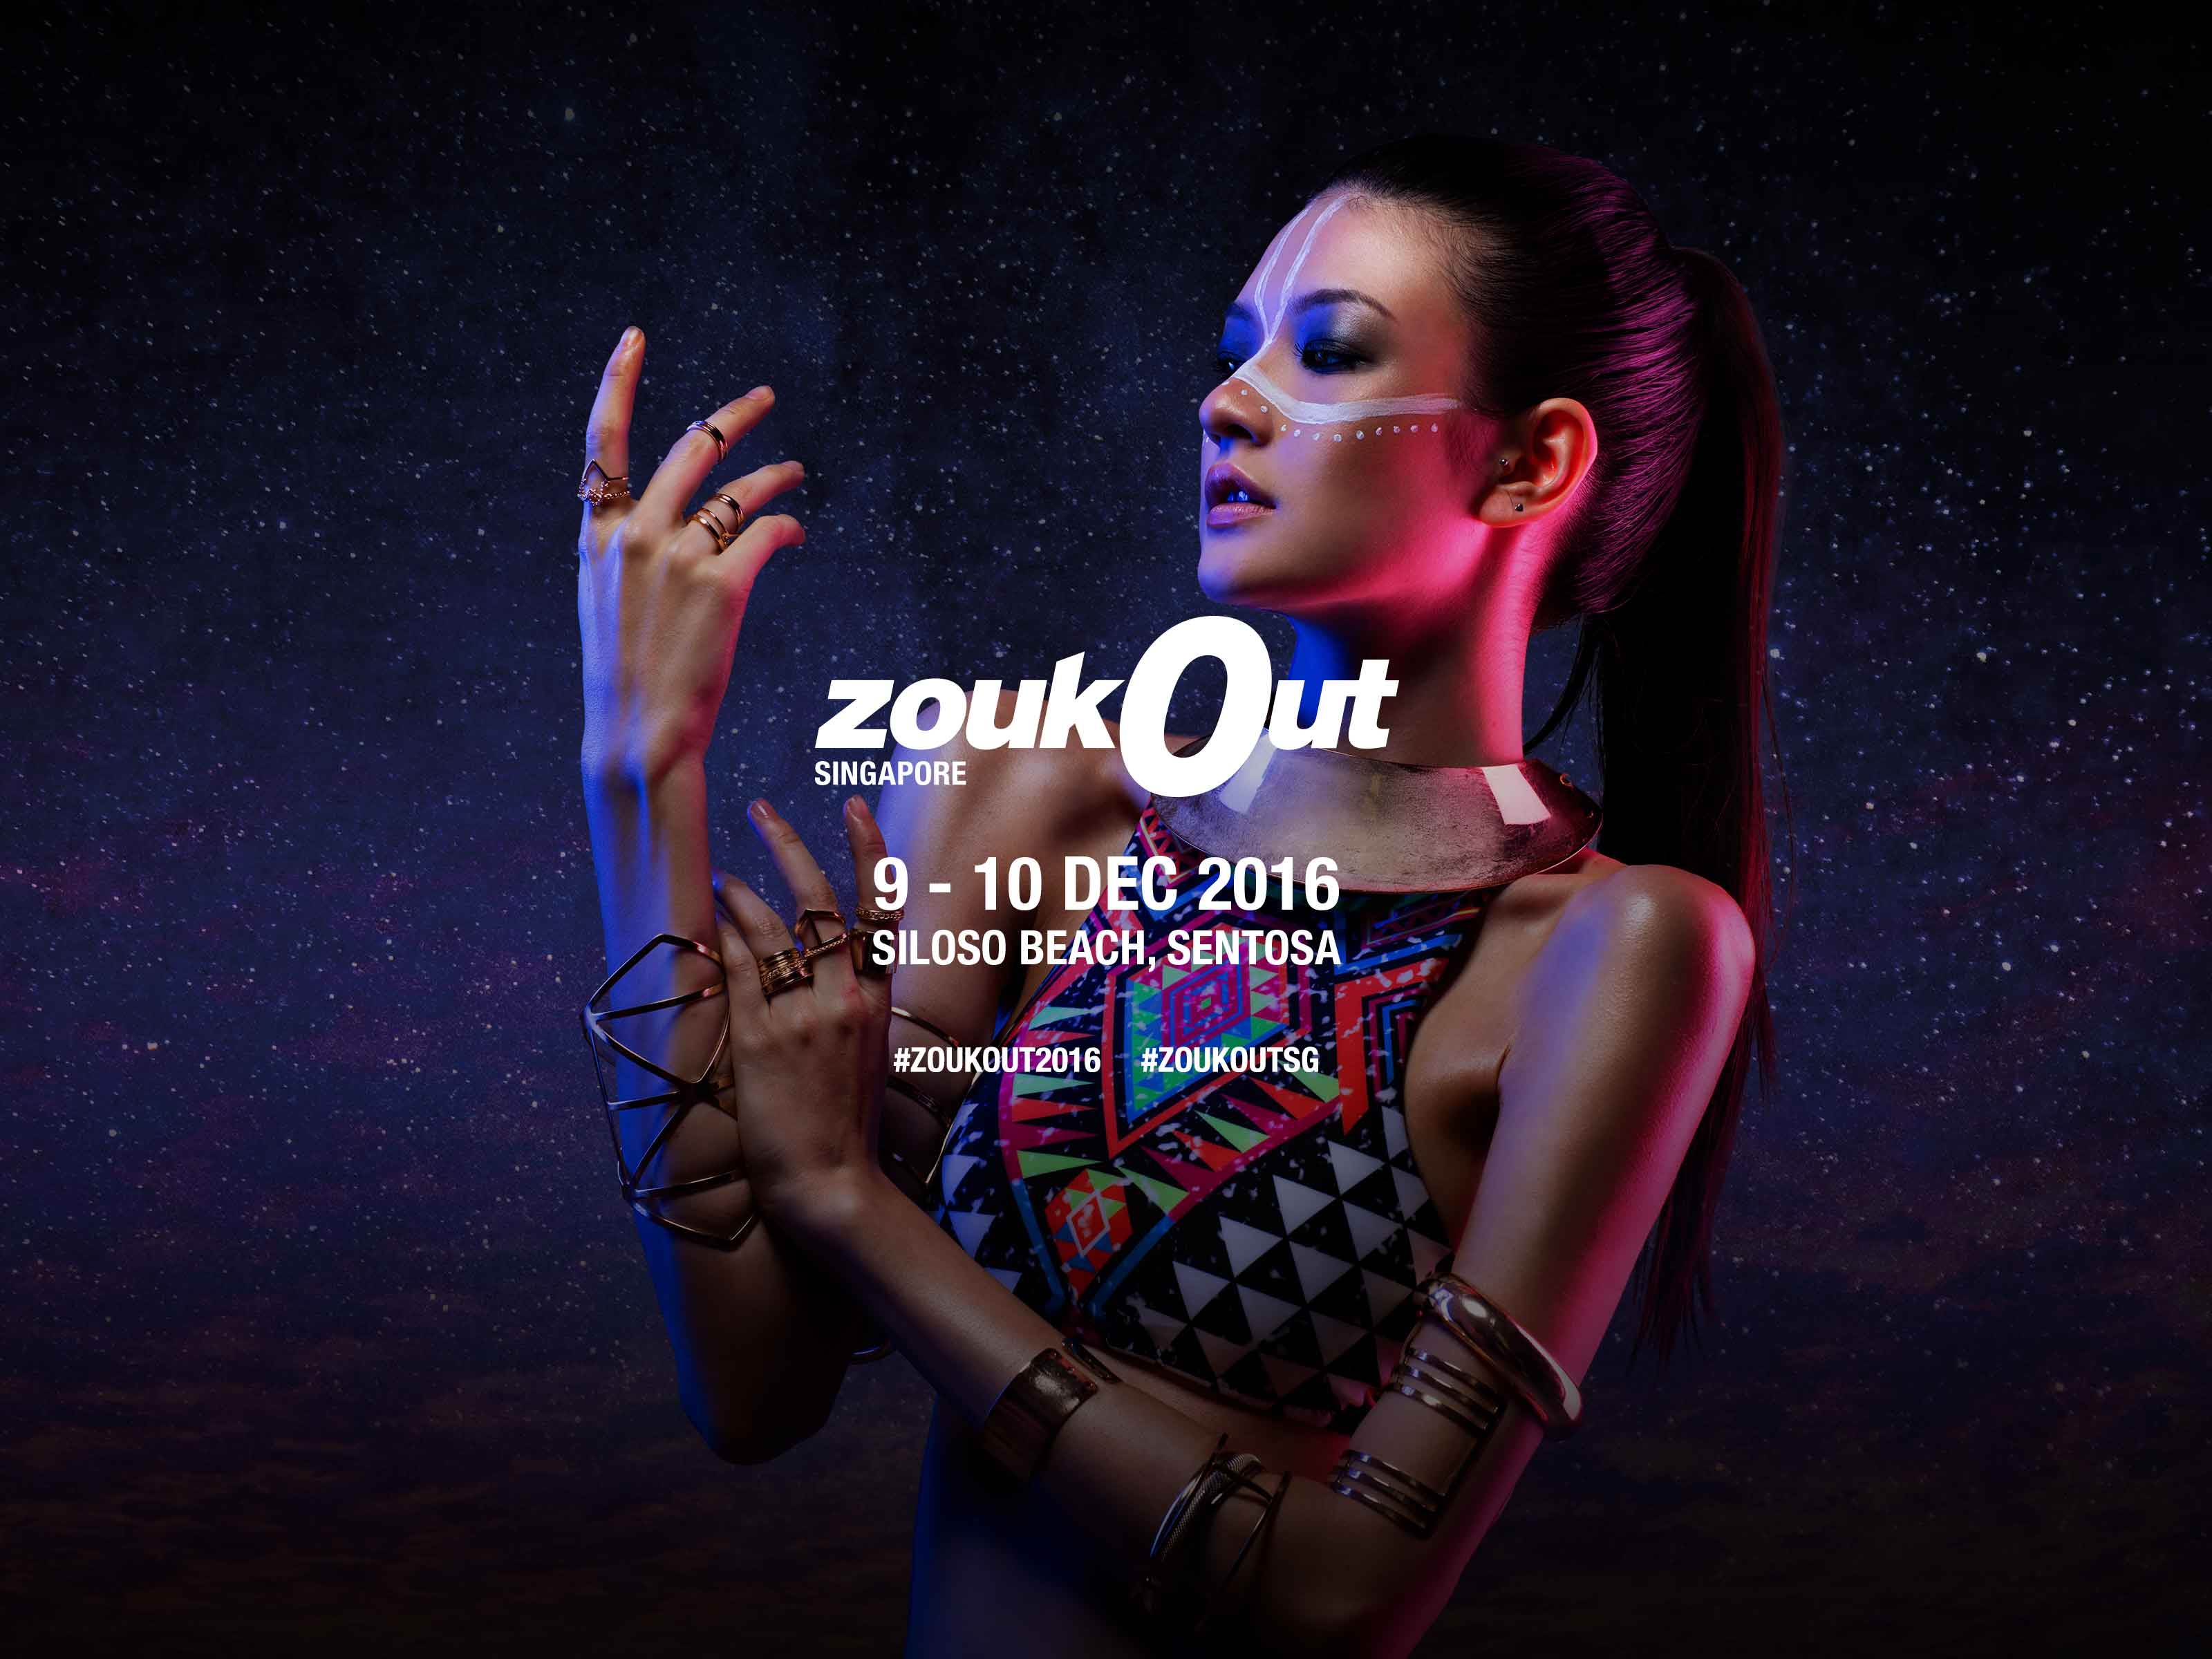 LeNERD, TOKiMONSTA, CyberJapan Dancers and other Asian DJs fill up ZoukOut 2016 lineup